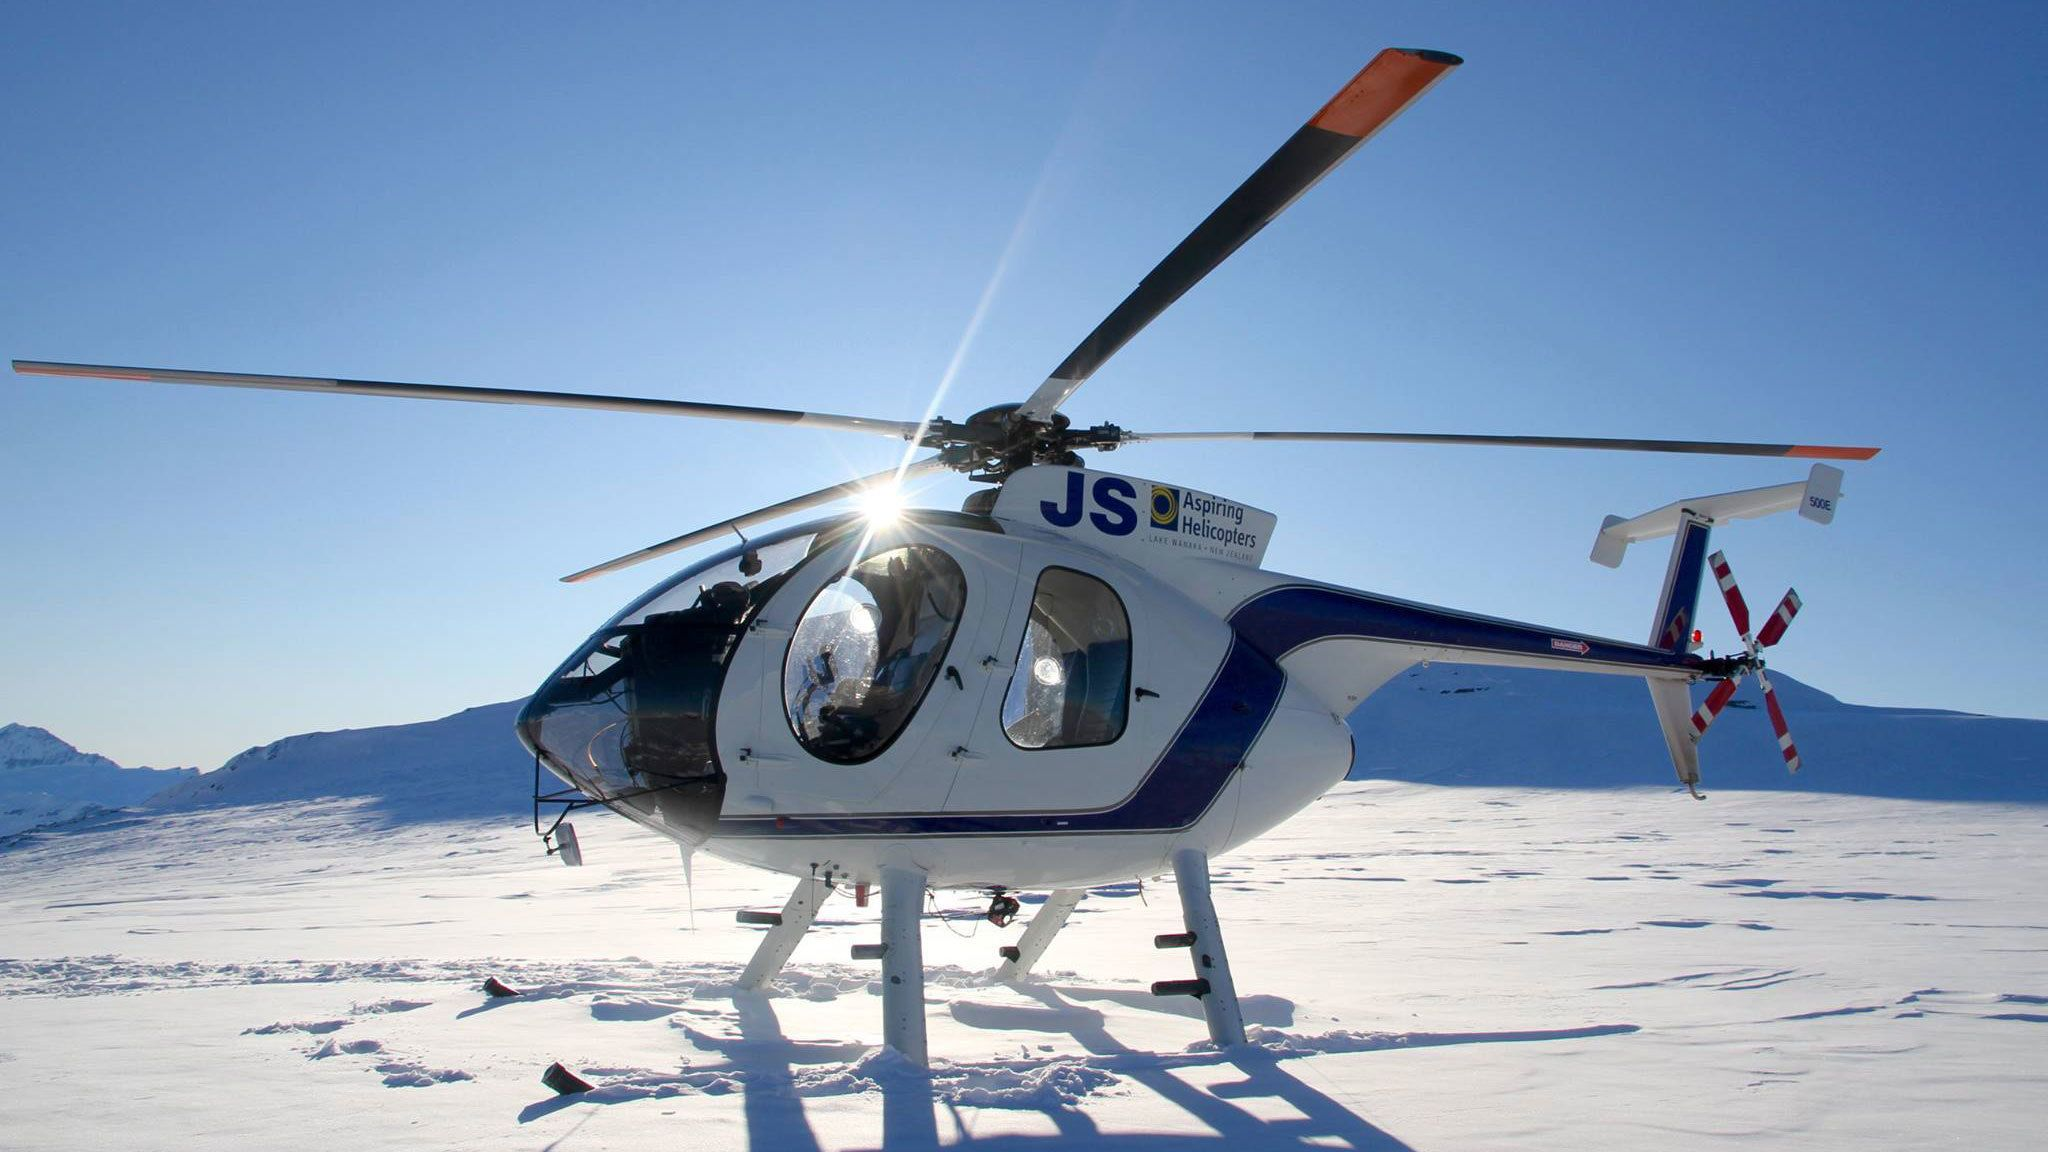 Helicopter on a snowy mountain top